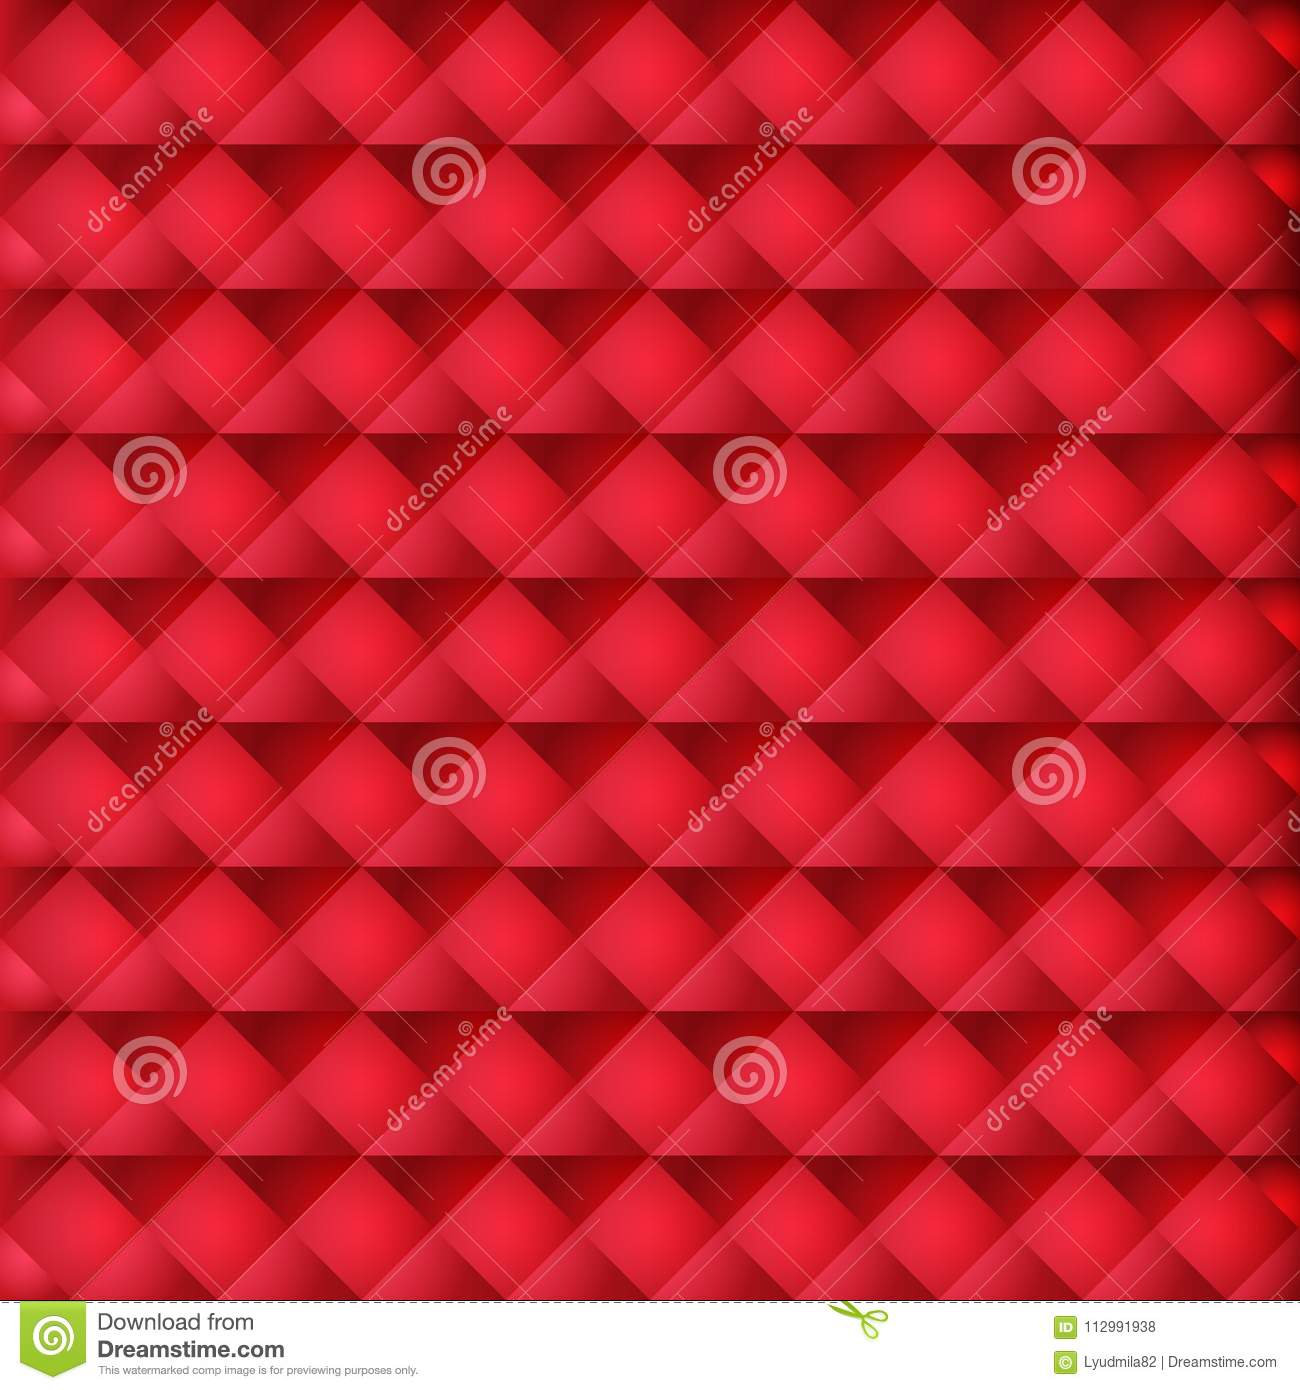 Red geometric background for website decoration, banner, leaflet, top cover, packing.